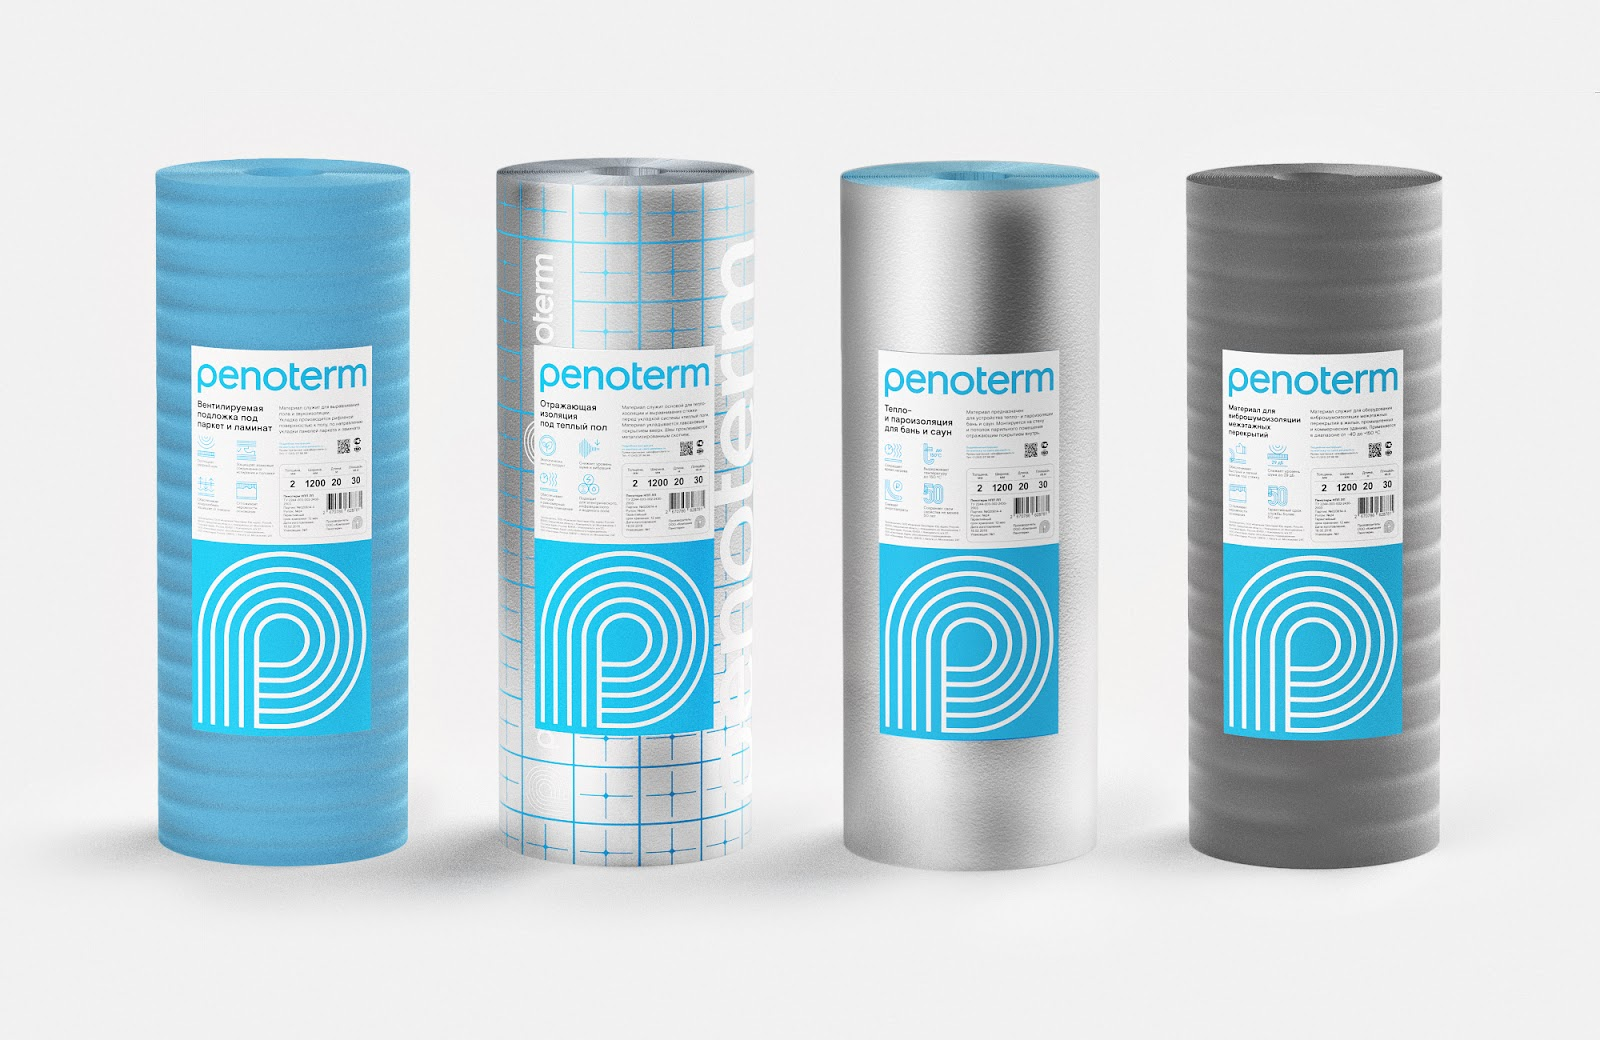 Penoterm Insulation Products Redesigned On Packaging Of